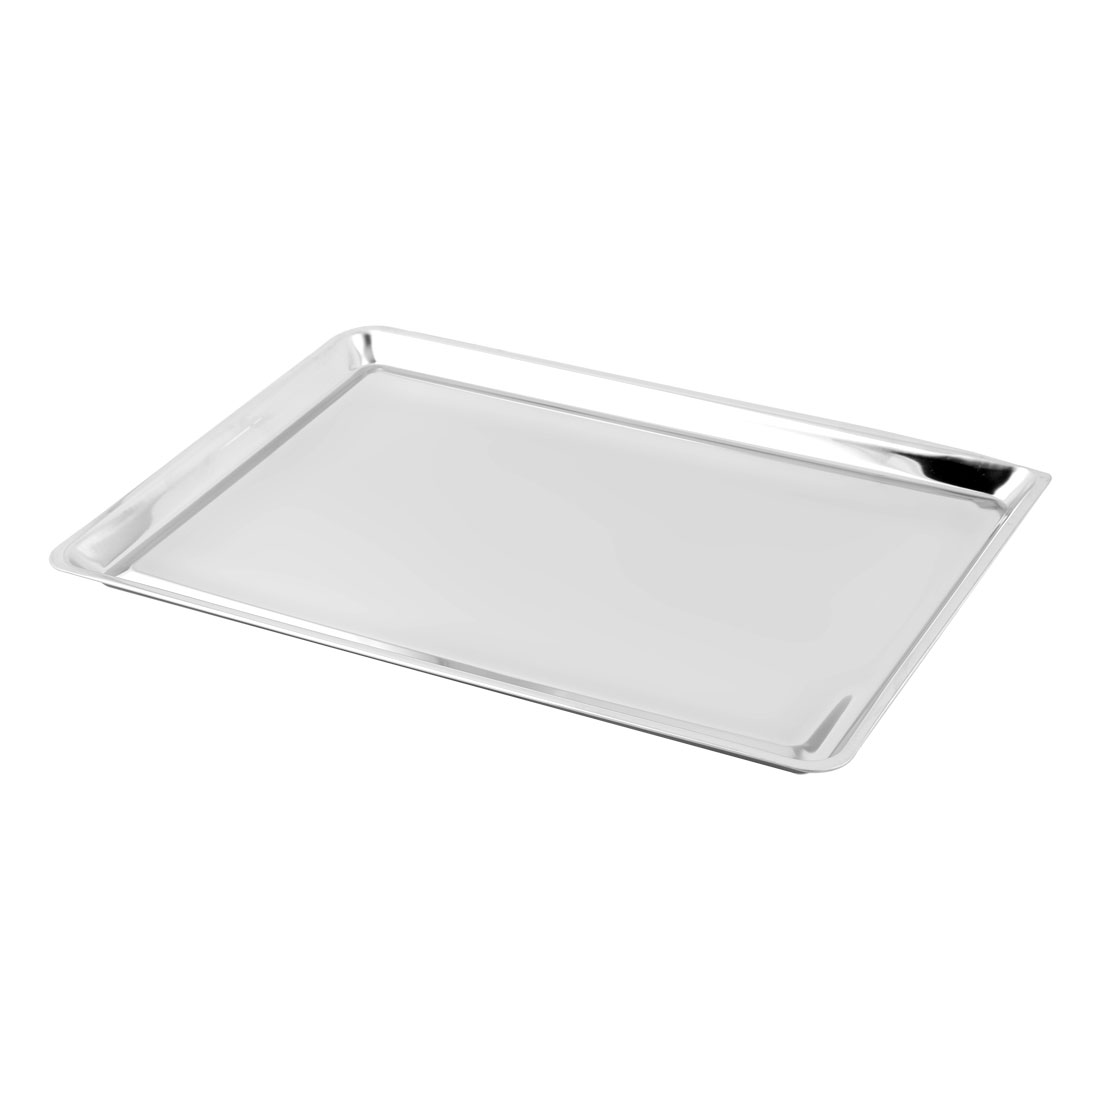 Canteen Restaurant Metal Rectangle Shaped Snack Salad Food Dish Plate